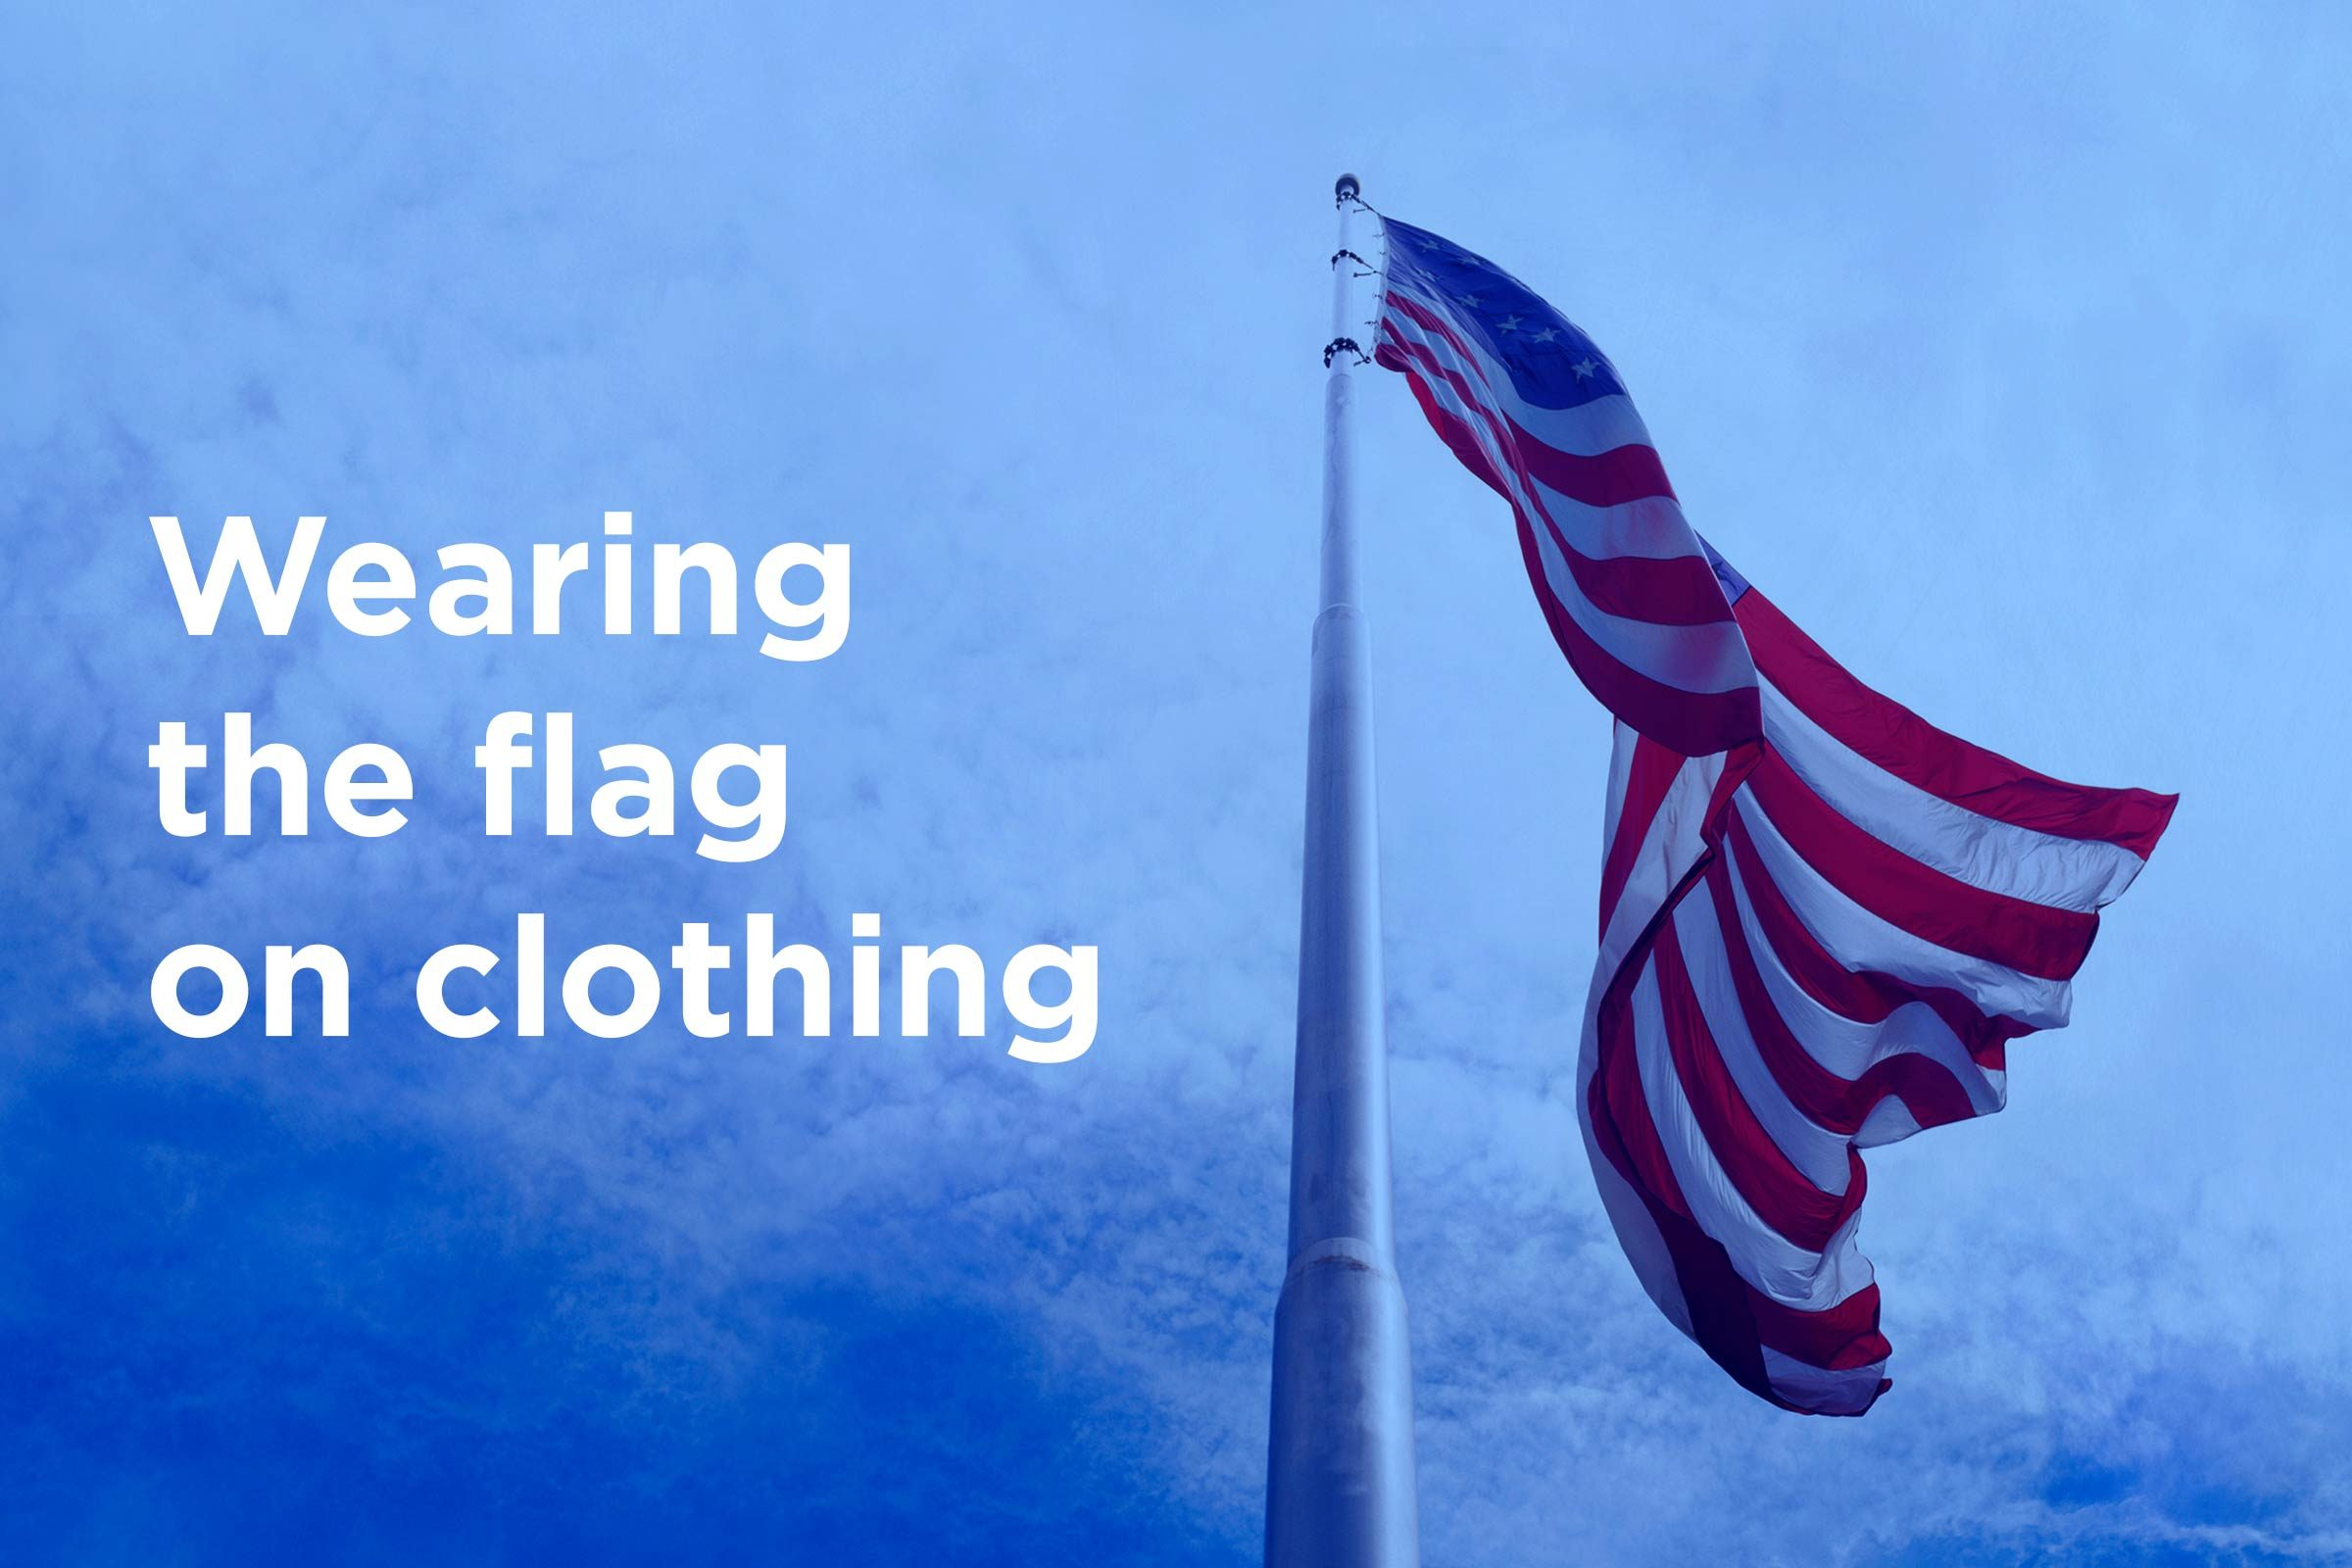 Wearing_the_flag_on_clothing